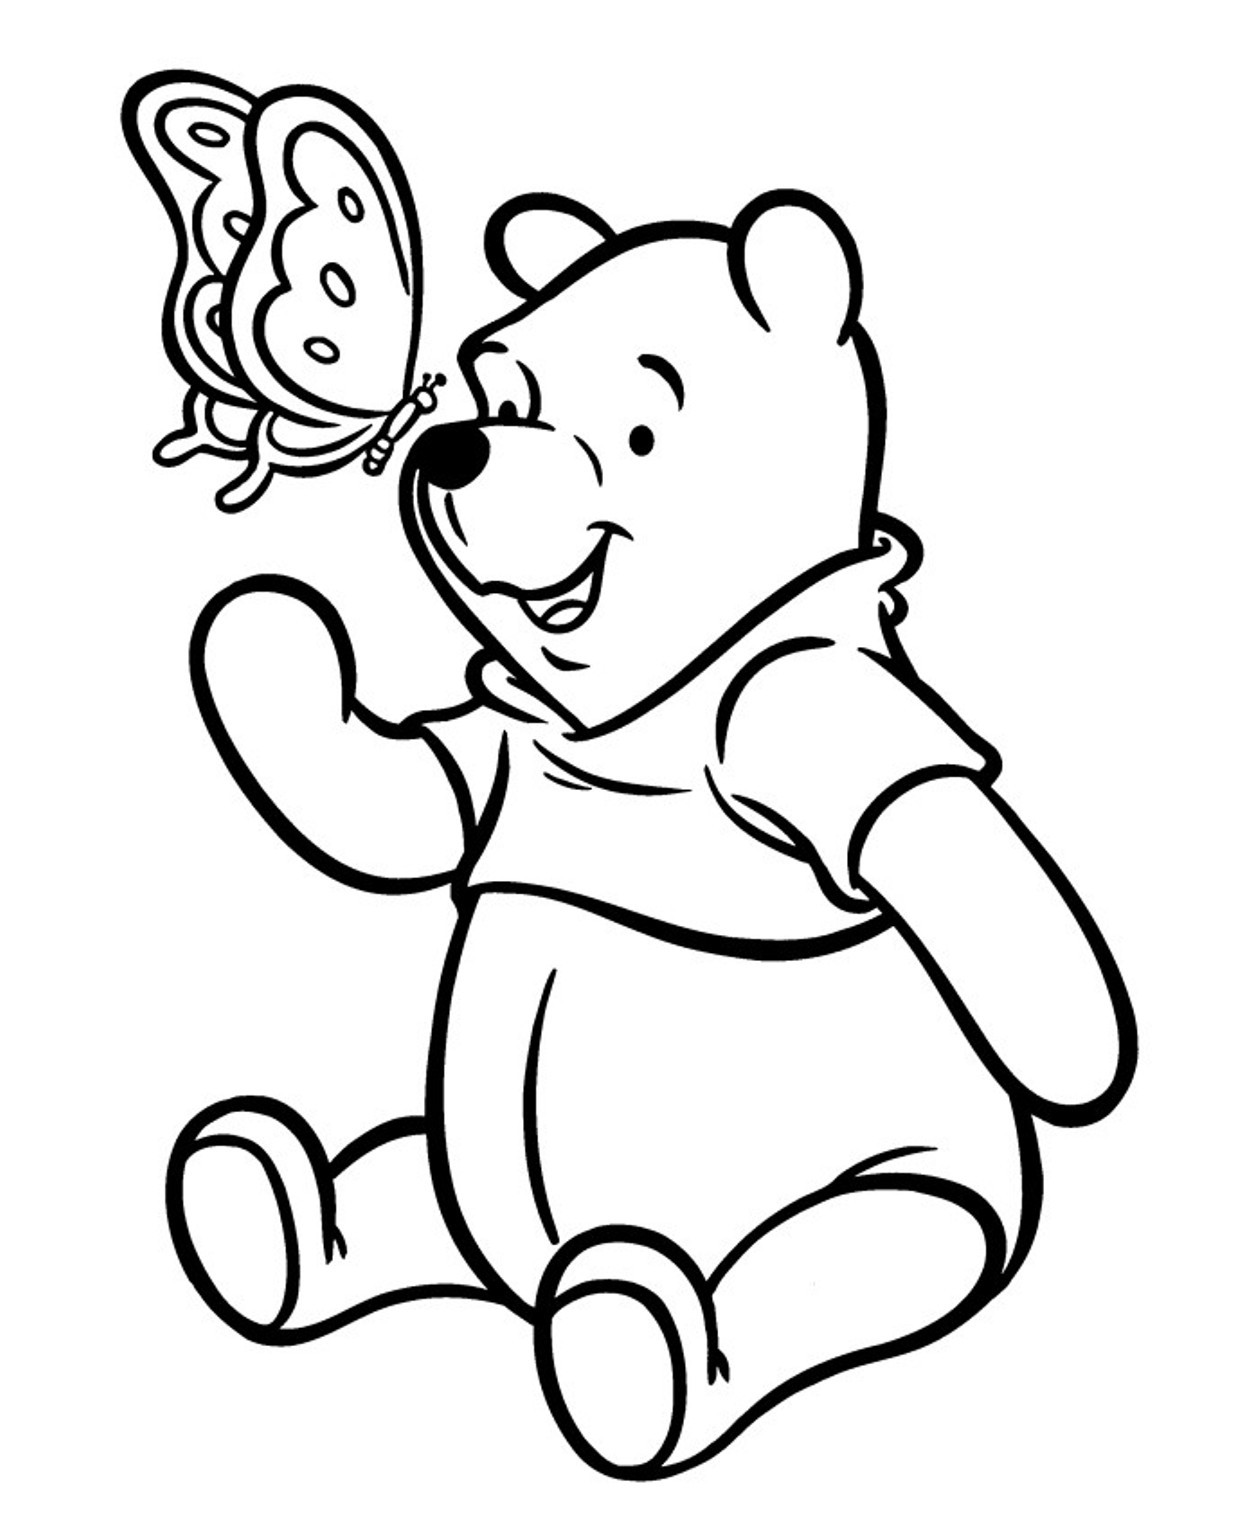 winnie the pooh drawing classic winnie the pooh drawing at getdrawings free download drawing the winnie pooh